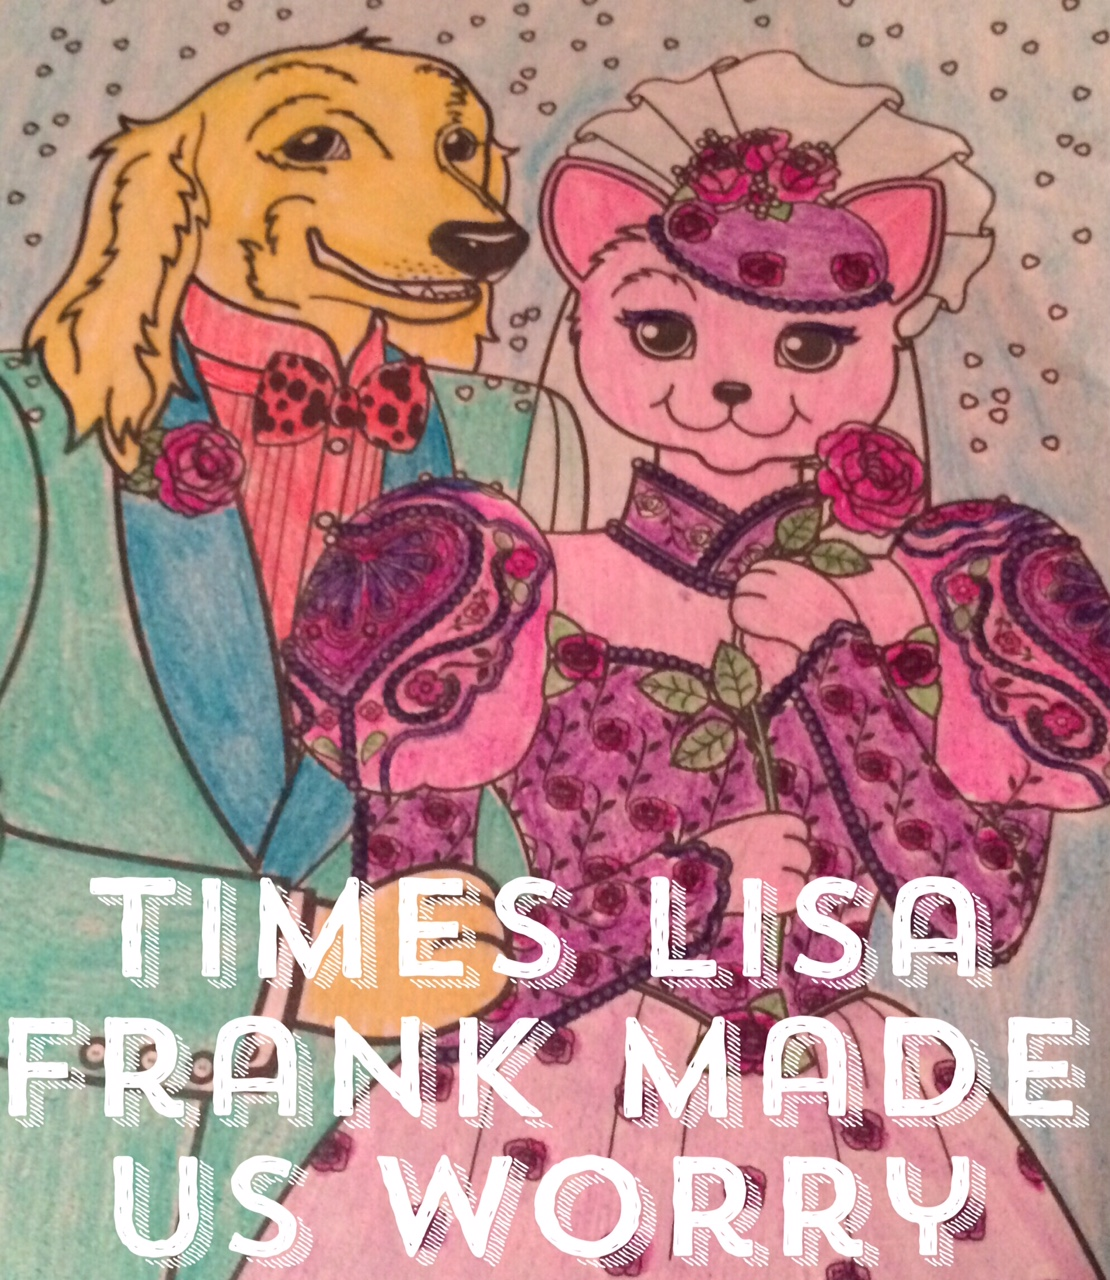 that girl in the wheelchair: 9 Times Lisa Frank Made us worry via ...